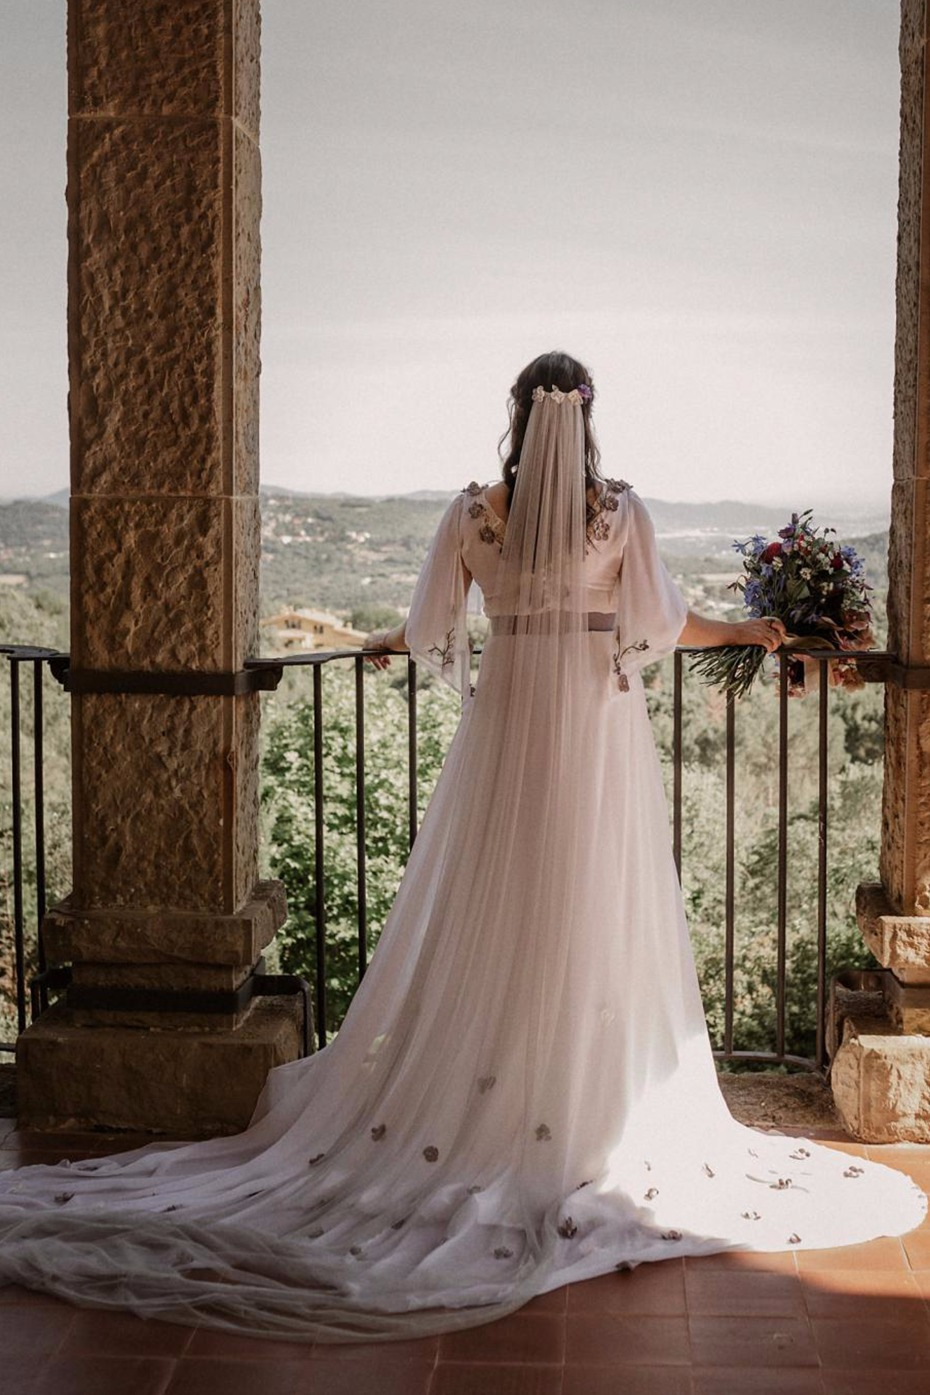 Couture wedding gown from Helena Mareque in Madrid